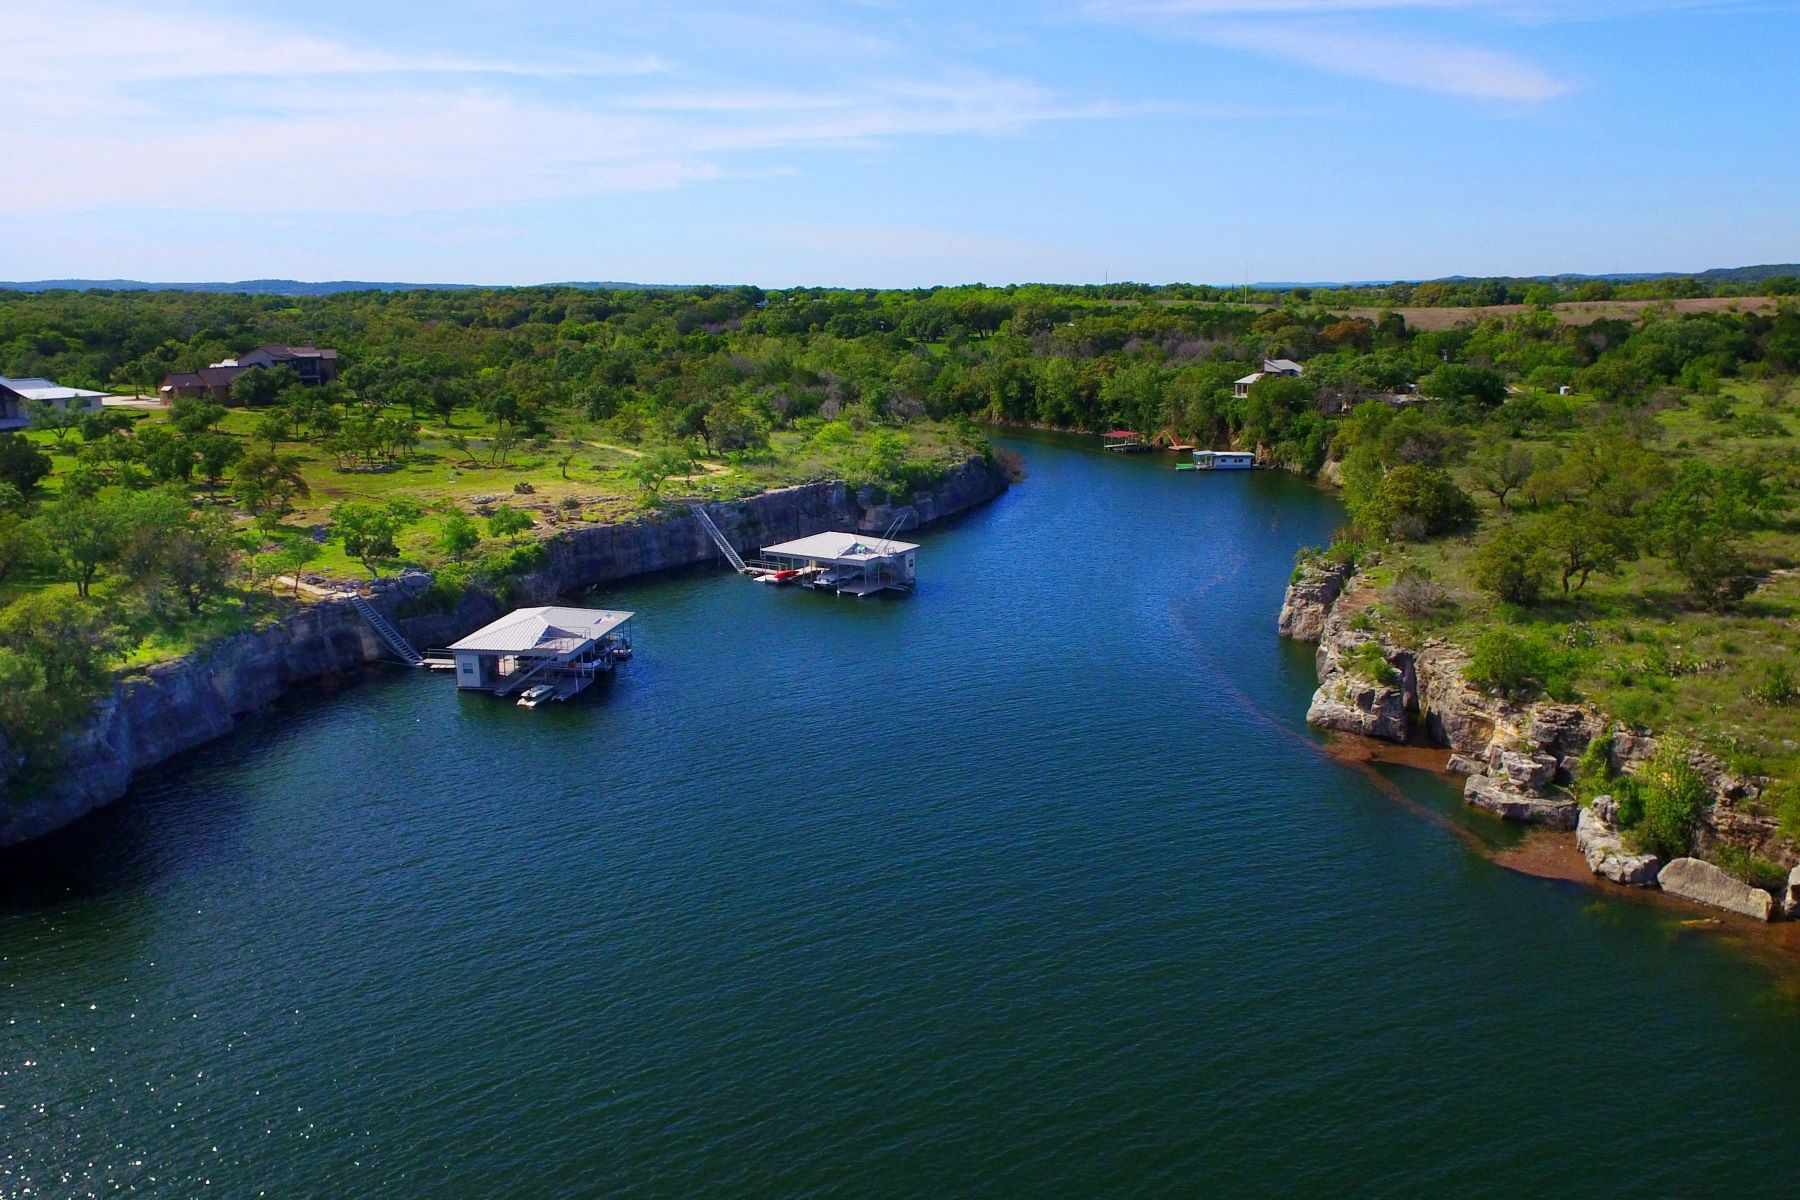 Terreno por un Venta en Beautiful Lot in a Tranquil Community 22709 Mary Nell Ln Spicewood, Texas 78669 Estados Unidos